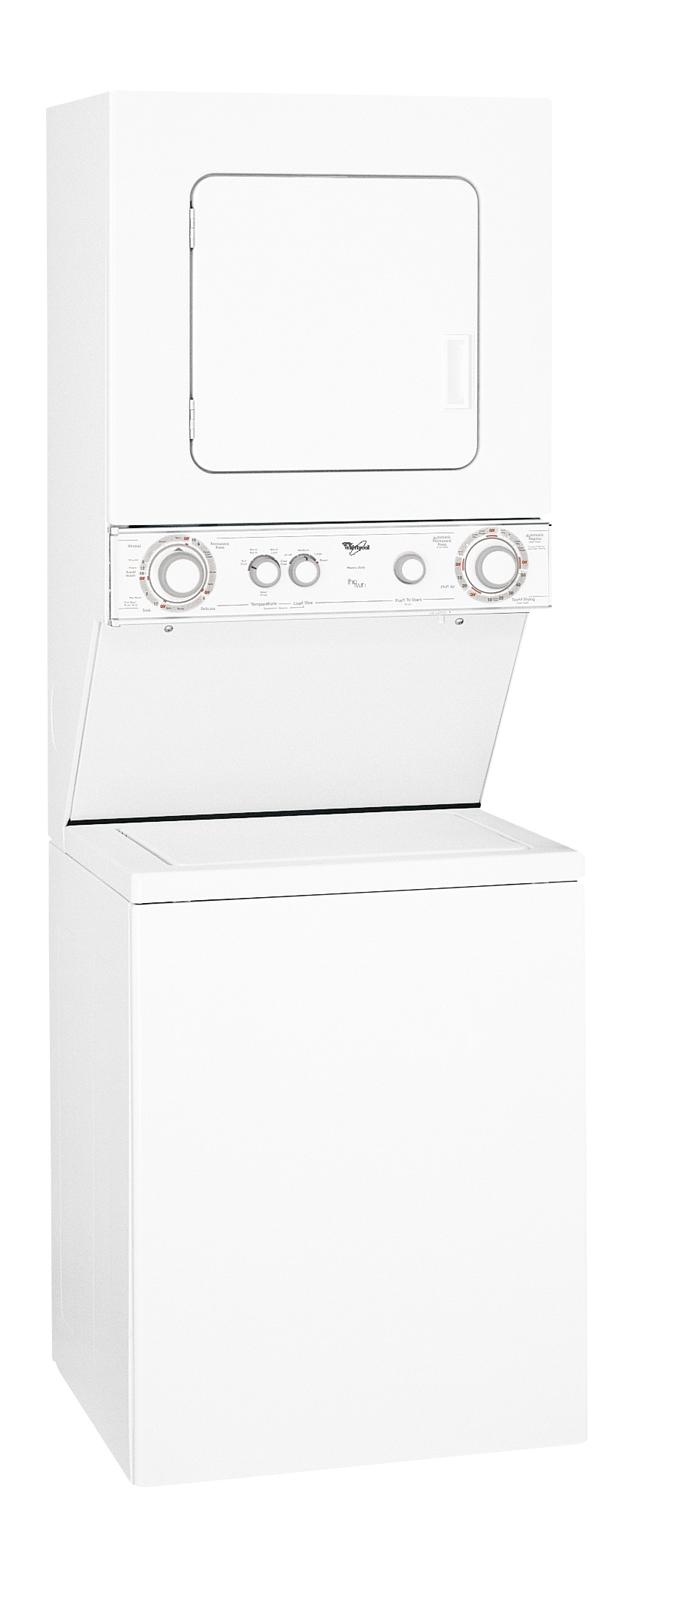 Whirlpool Combination Laundry Combination Washer and Gas Dryer - Item Number: LTG5243DQ